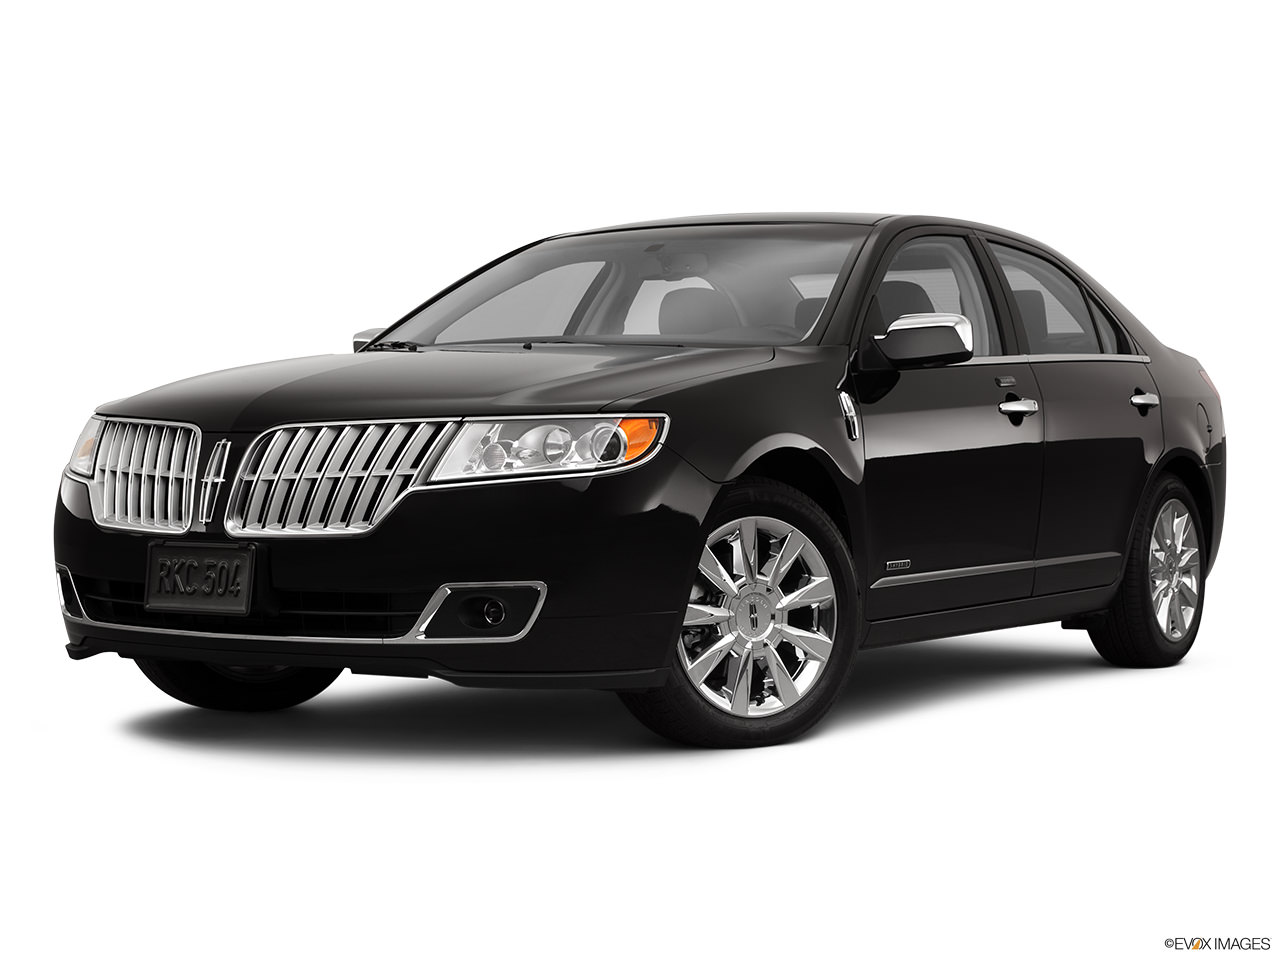 2012 Lincoln Mkz Hybrid Review >> A Buyer S Guide To The 2012 Lincoln Mkz Hybrid Yourmechanic Advice